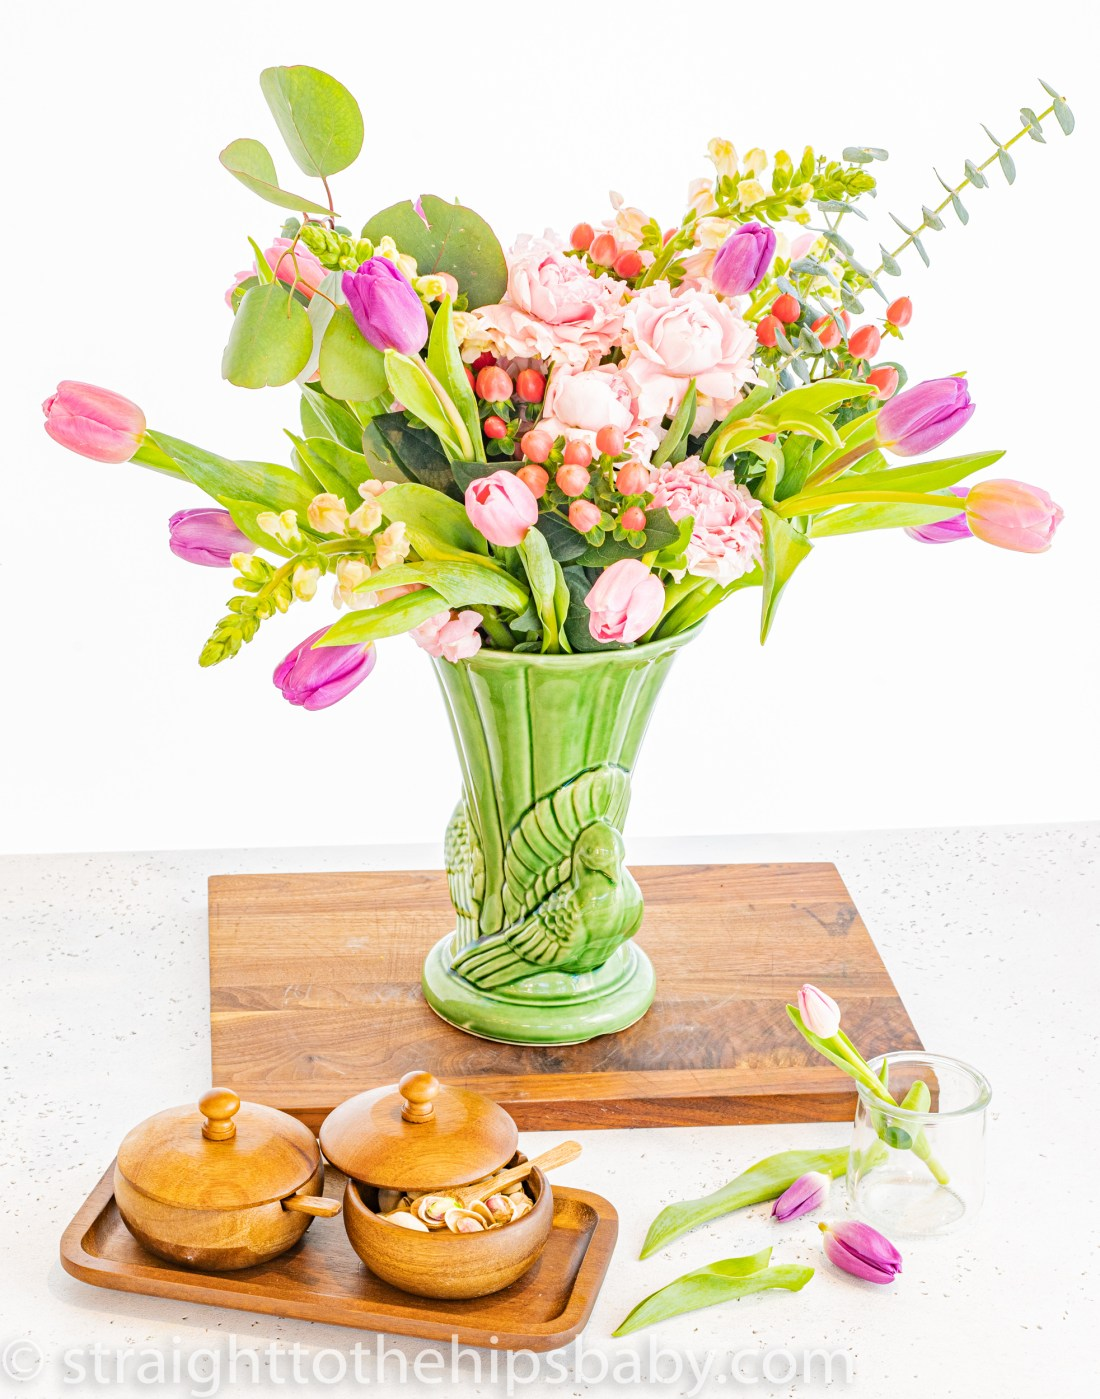 finished Easter or Passover dinner bouquet for